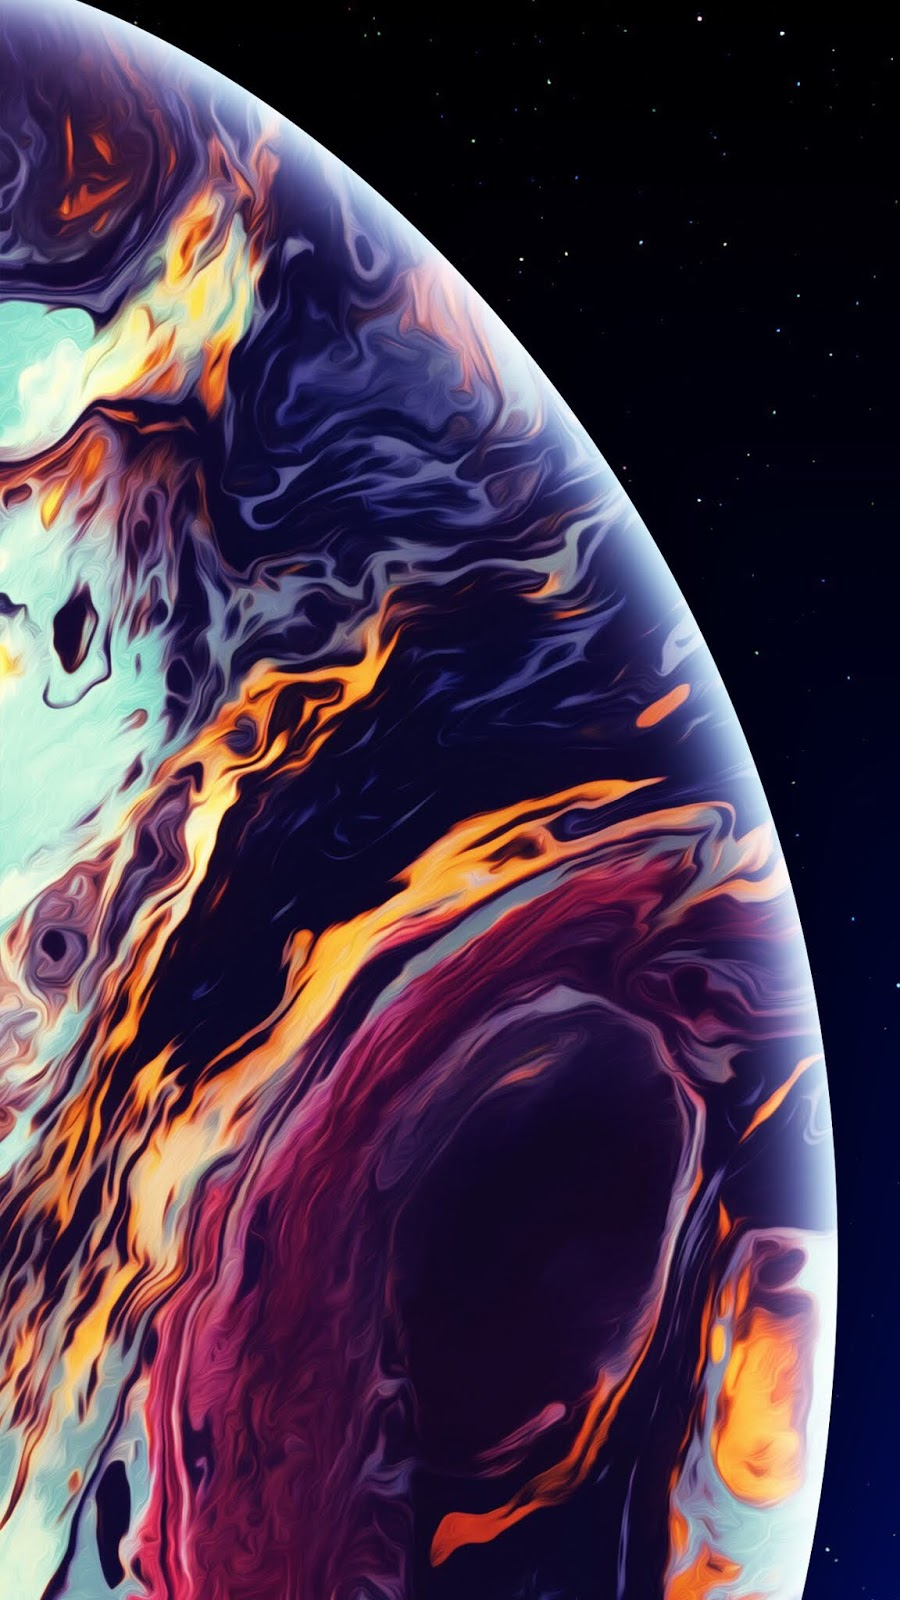 Get Awesome Lock Screen Iphone Anime for Your iPhone 11